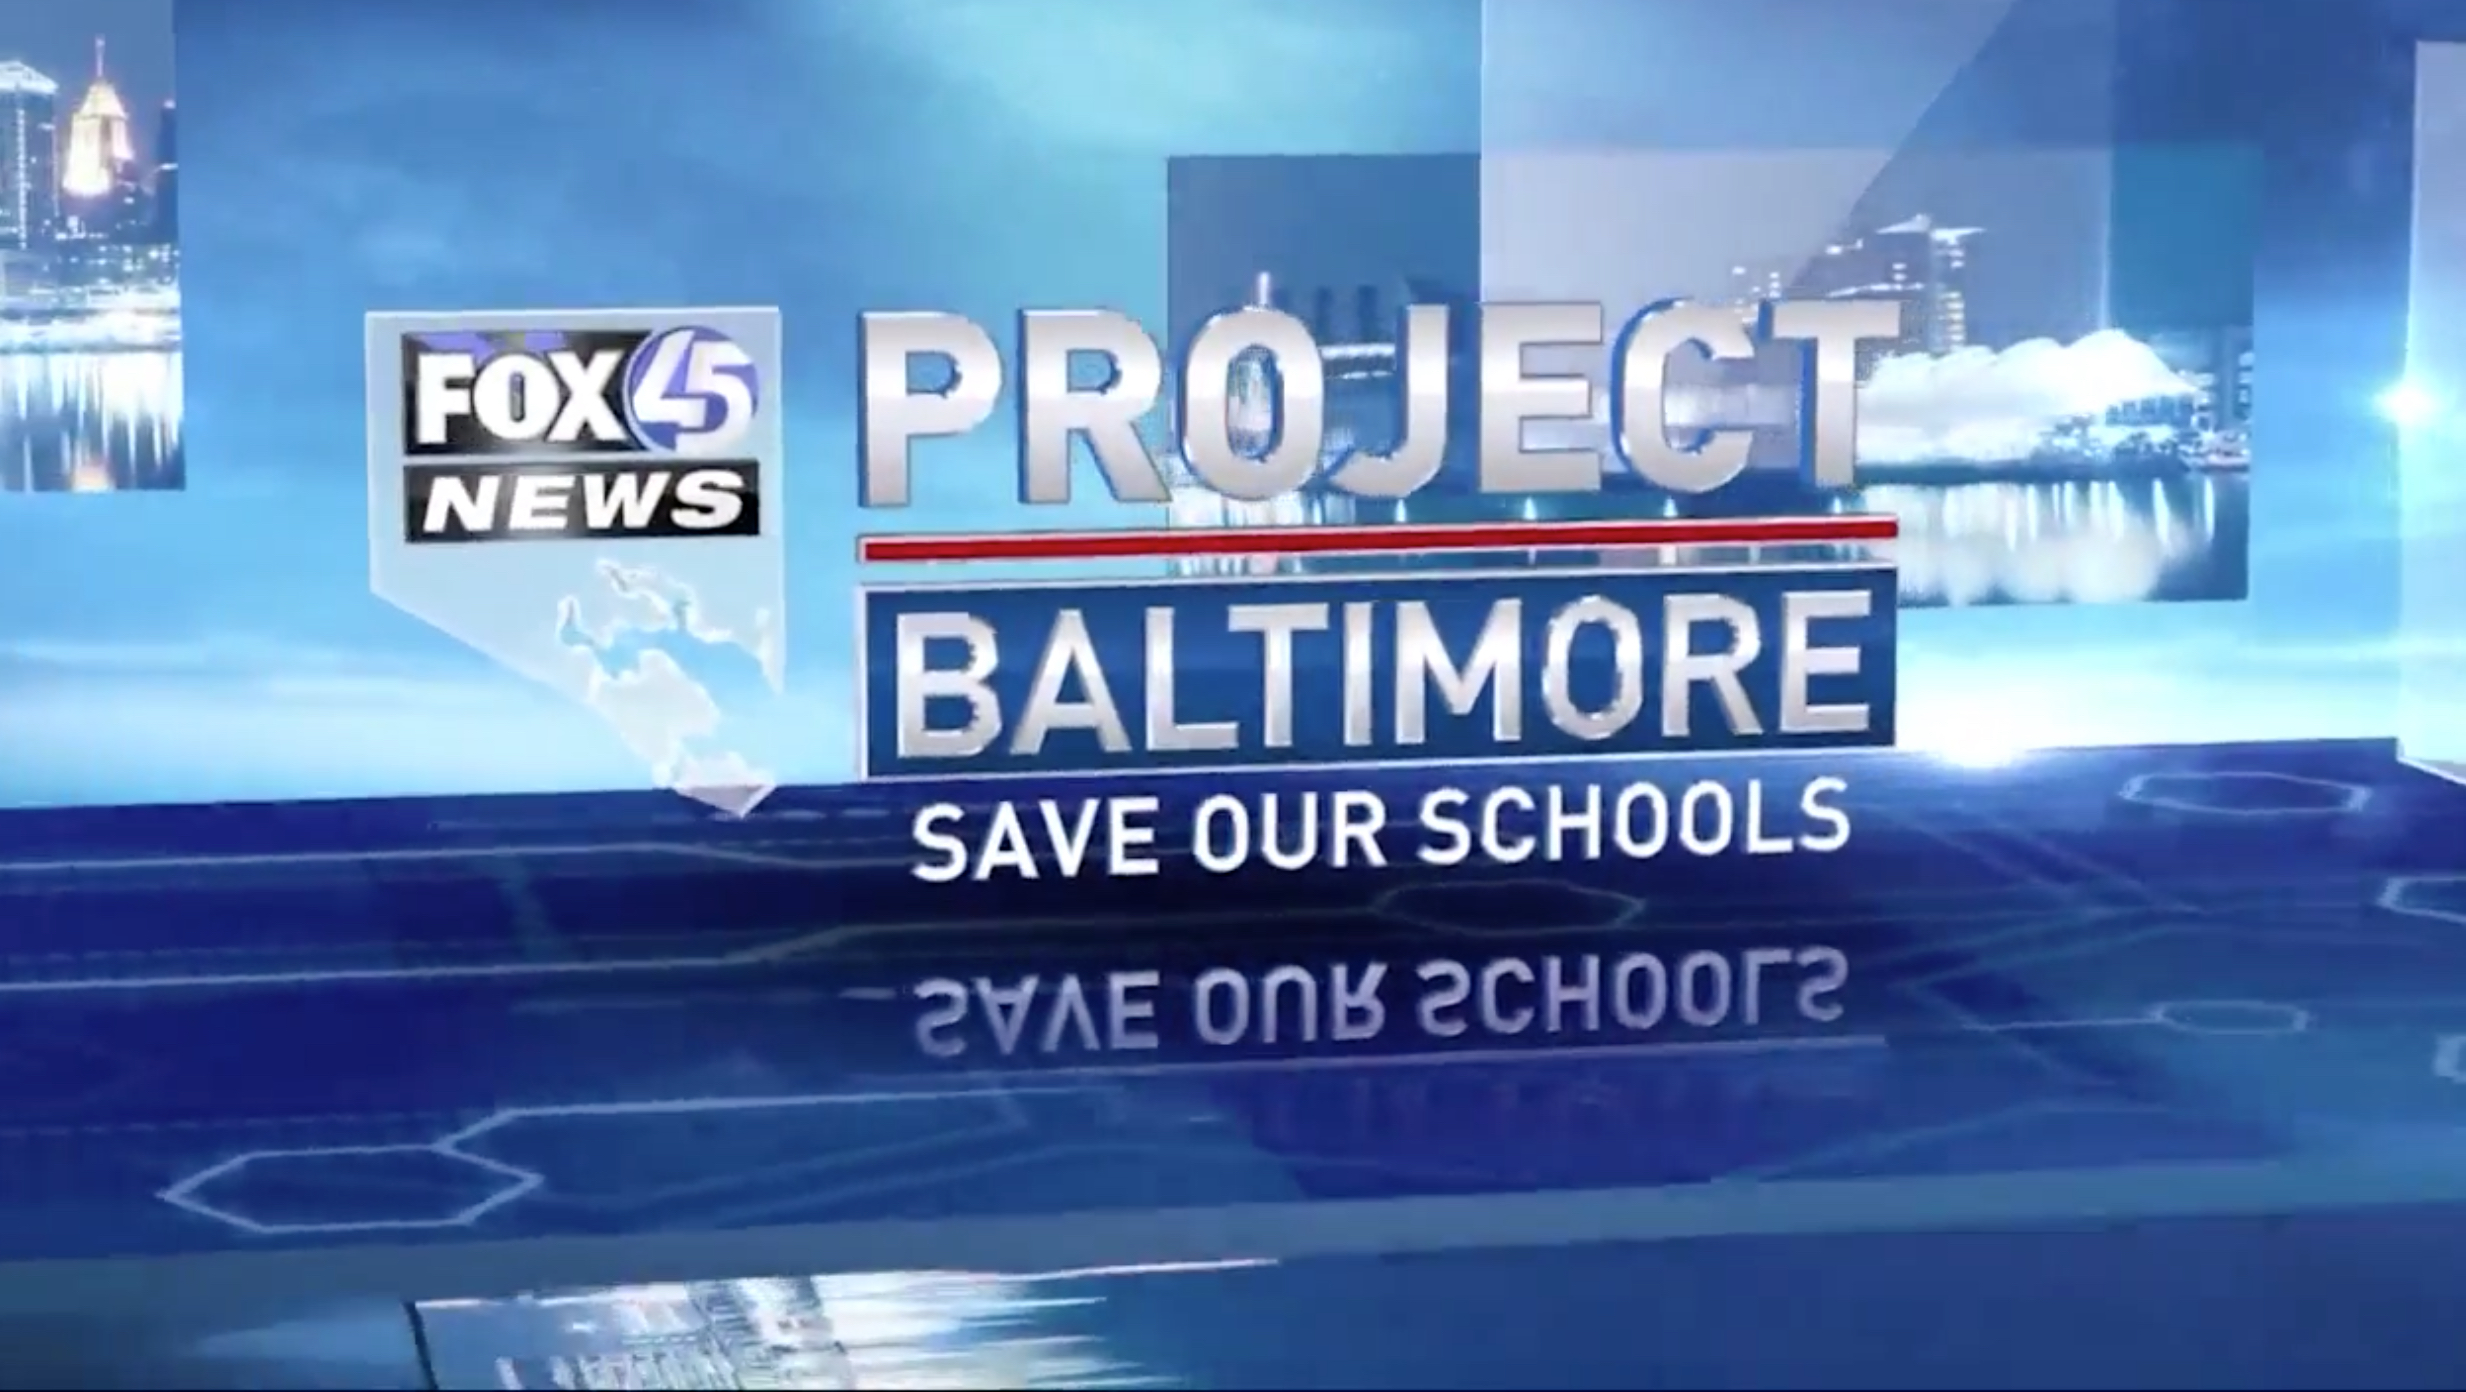 Fillmore Hentai building a case: sinclair broadcasting's project baltimore